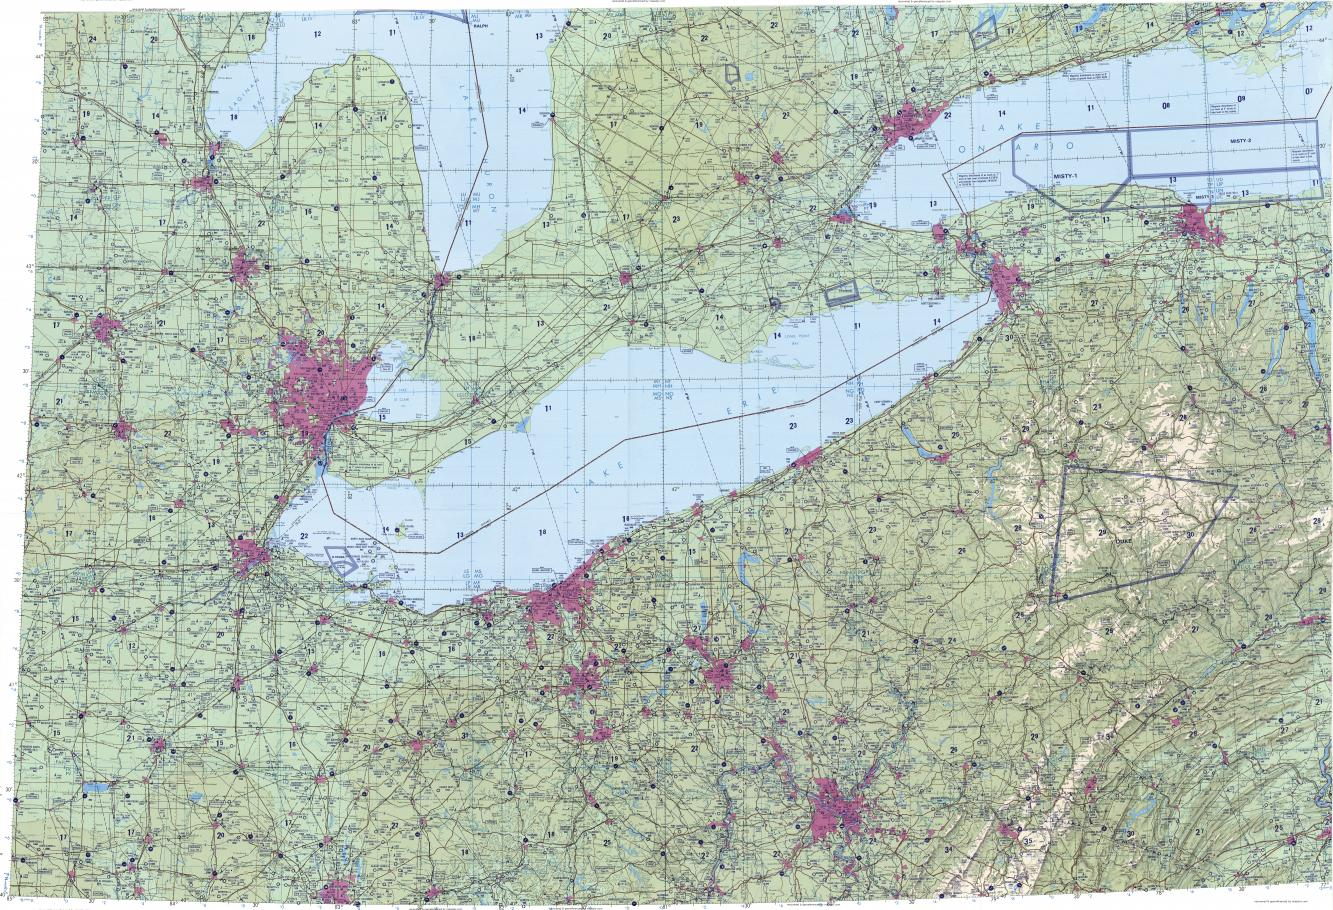 Download Topographic Map In Area Of Detroit Toronto Cleveland - Lake erie topographic map